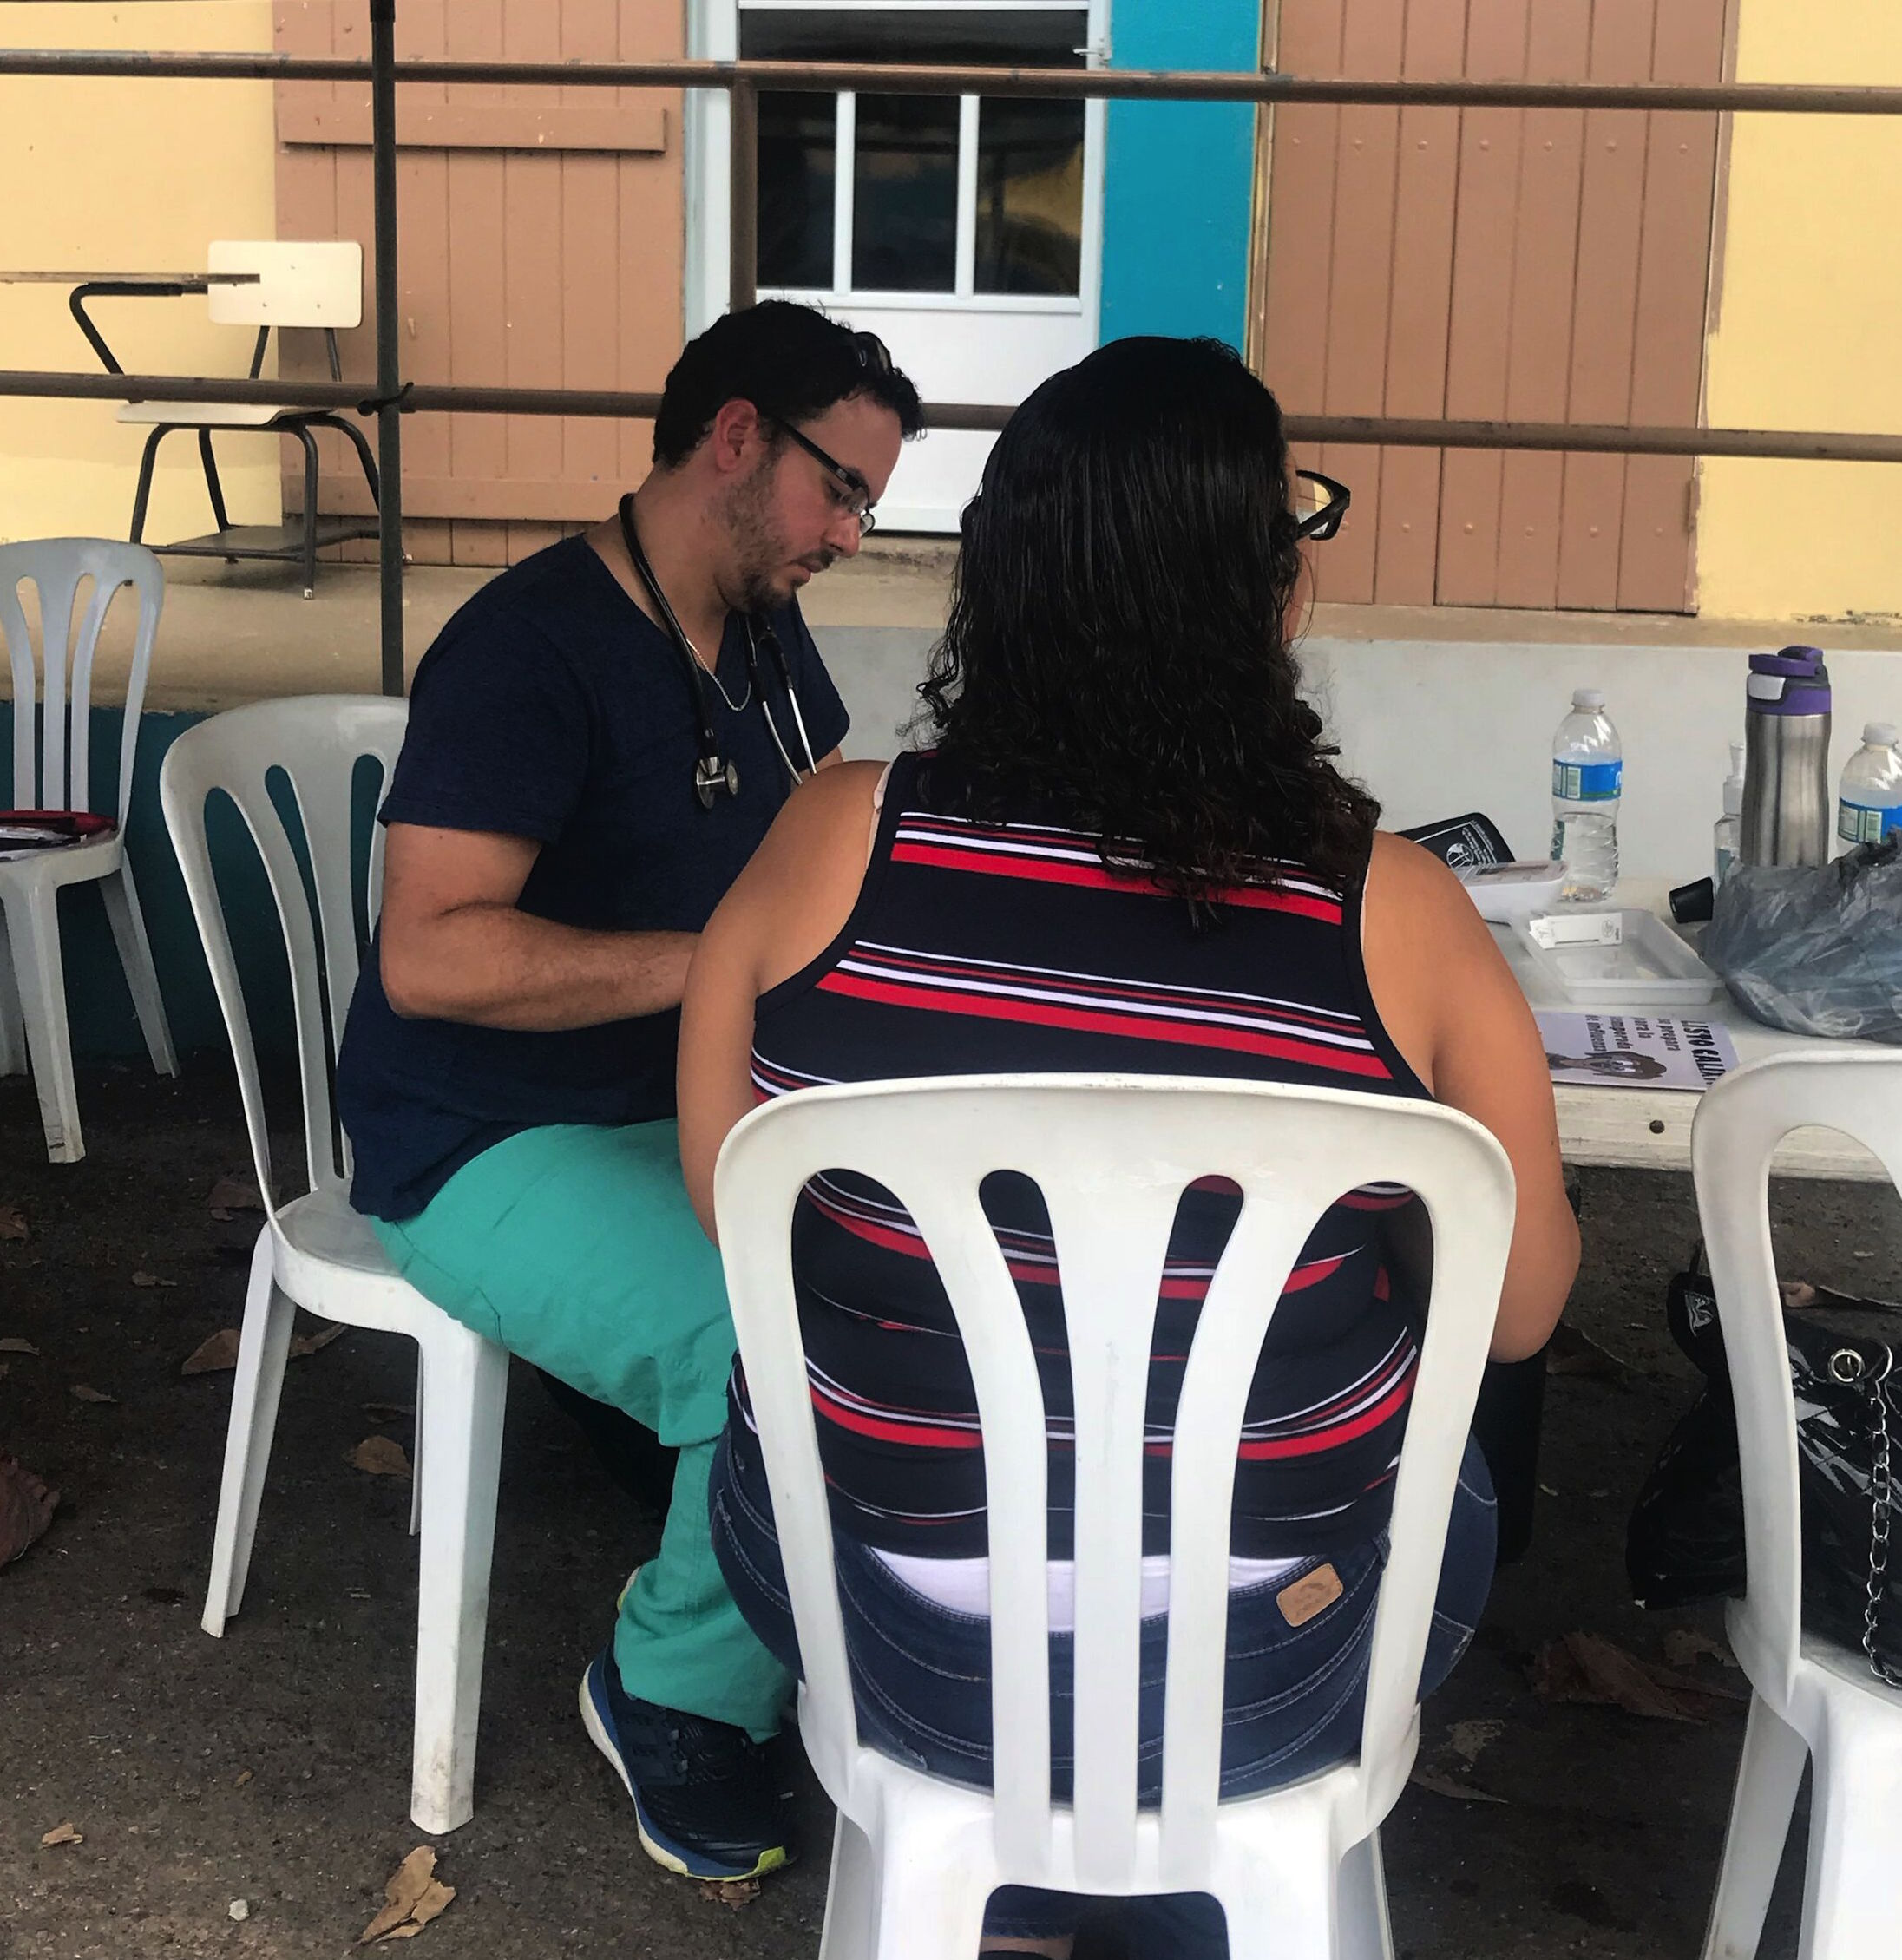 Puerto Rican physician Manuel Betancourt triages patients